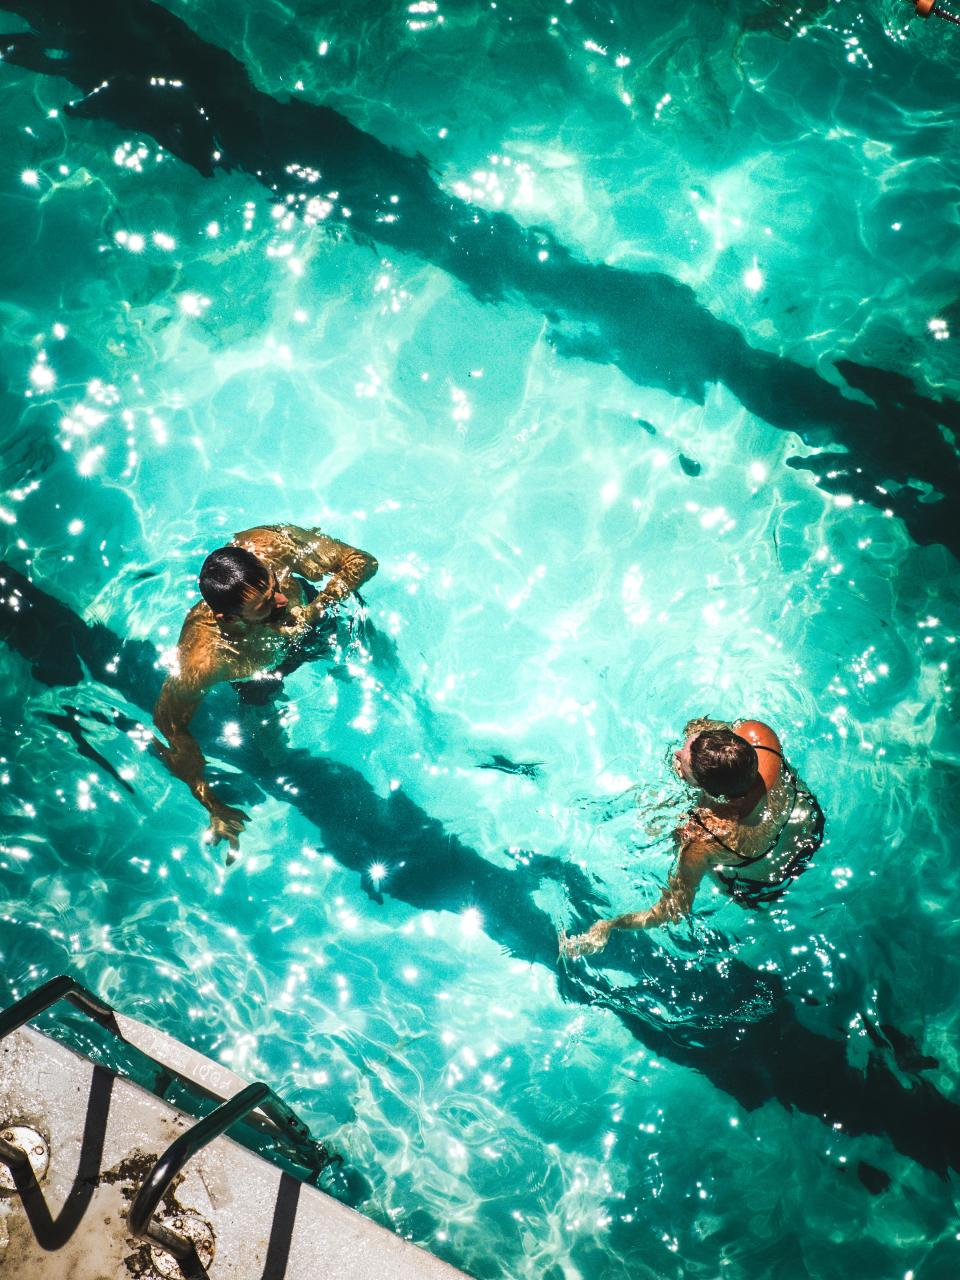 swimming pool blue water swim people man woman couple sunny day summer outdoor reflection